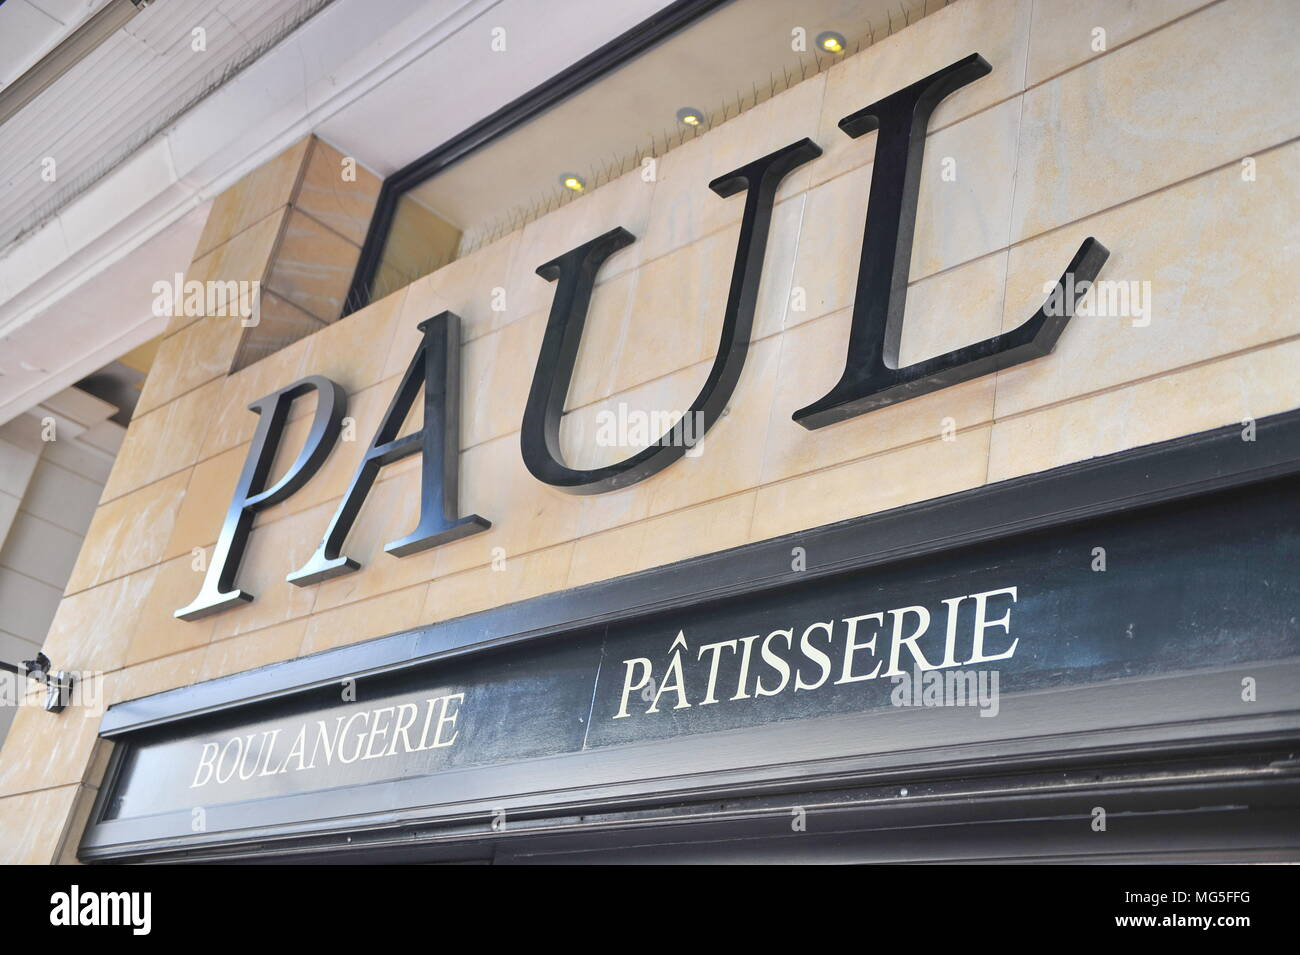 ATHENS, GREECE - FEBRUARY 19: Facade of Paul bakery cafe in Athens on February 19, 2018. Paul is a French chain of bakery cafes. - Stock Image